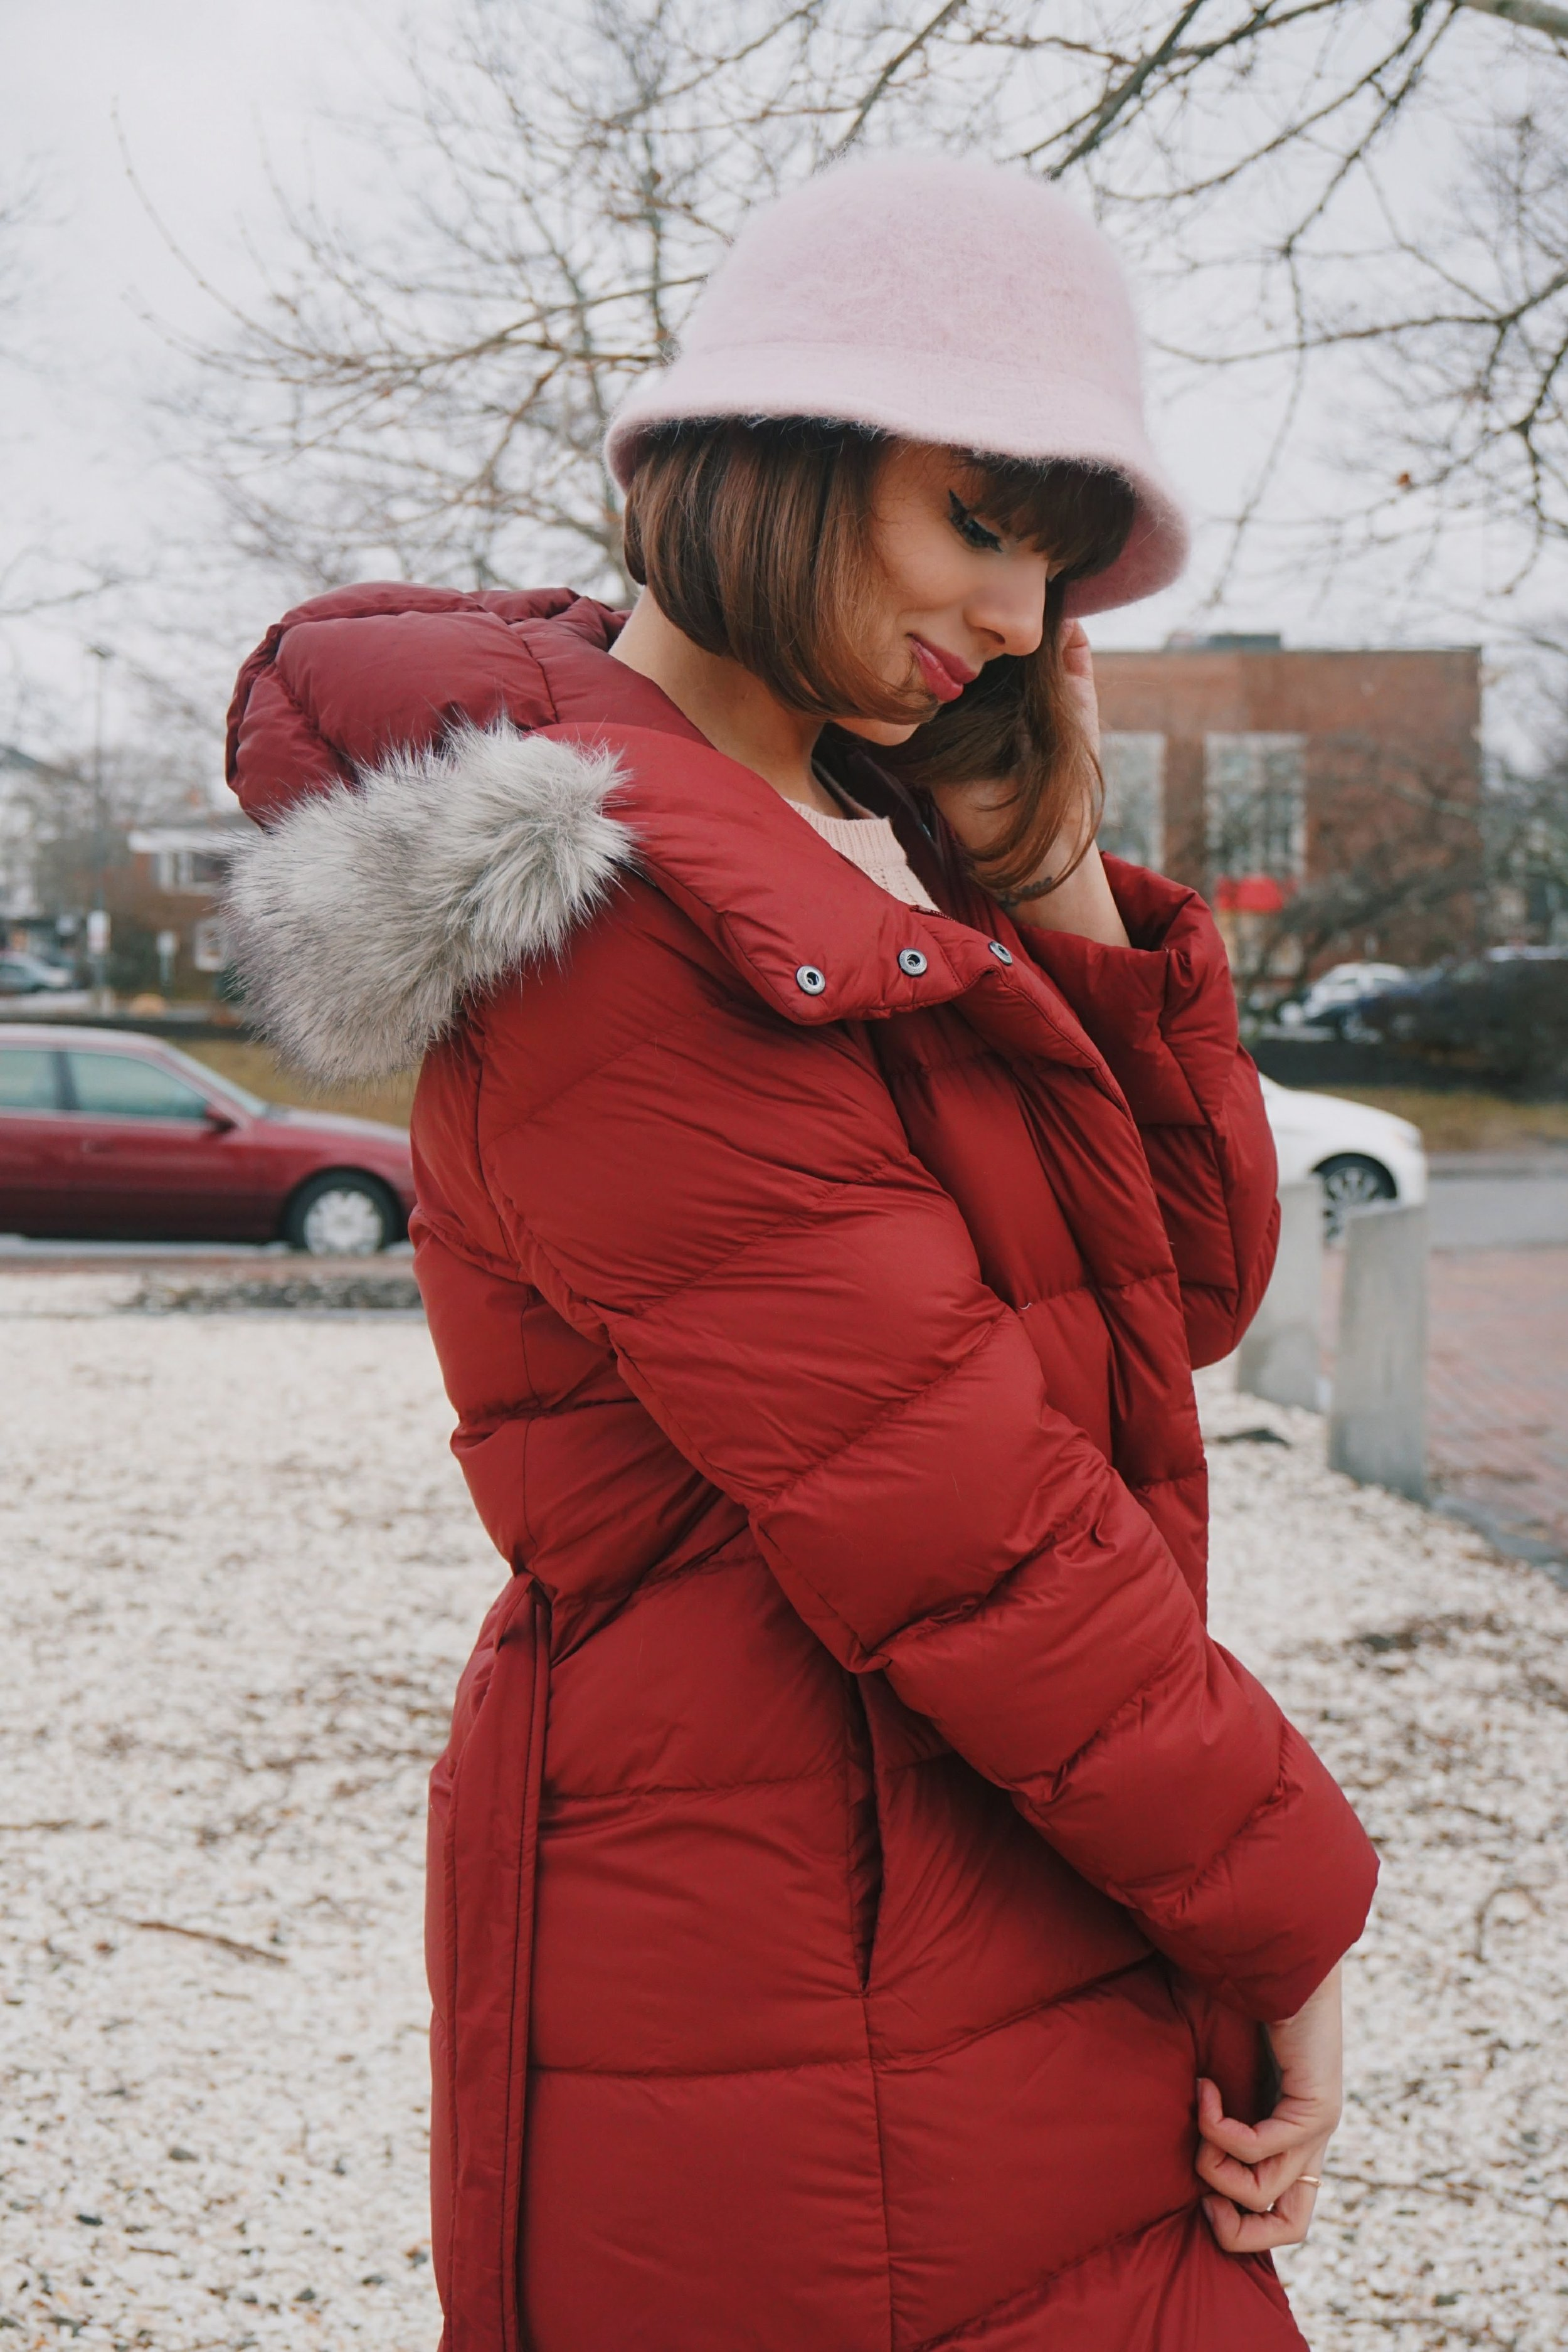 A girl looking down on the ground; she is wearing a cranberry colour winter coat and a pink hat.